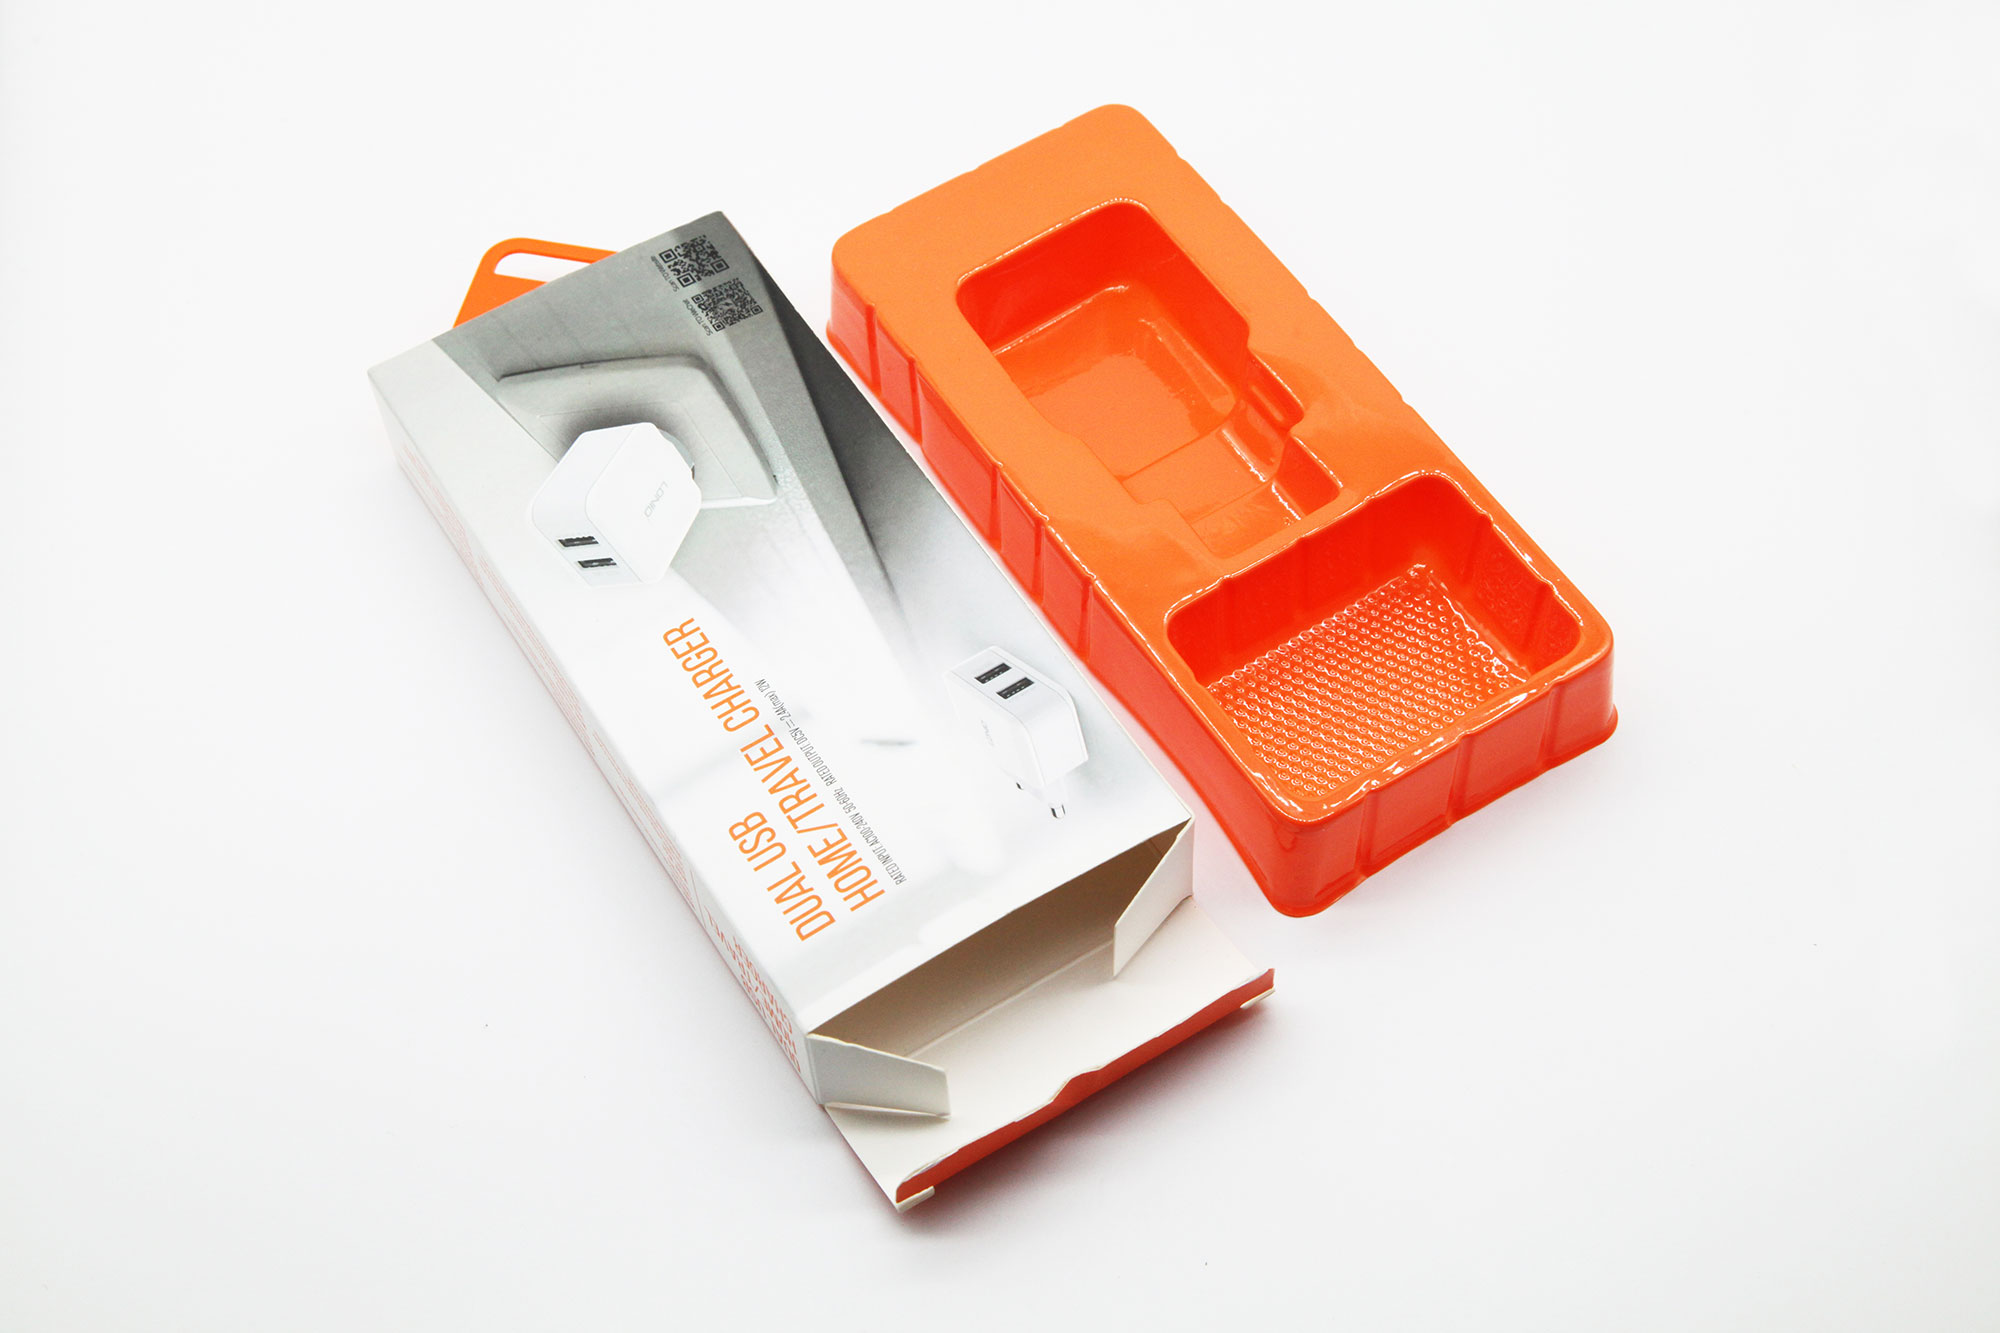 Phone charger packaging box